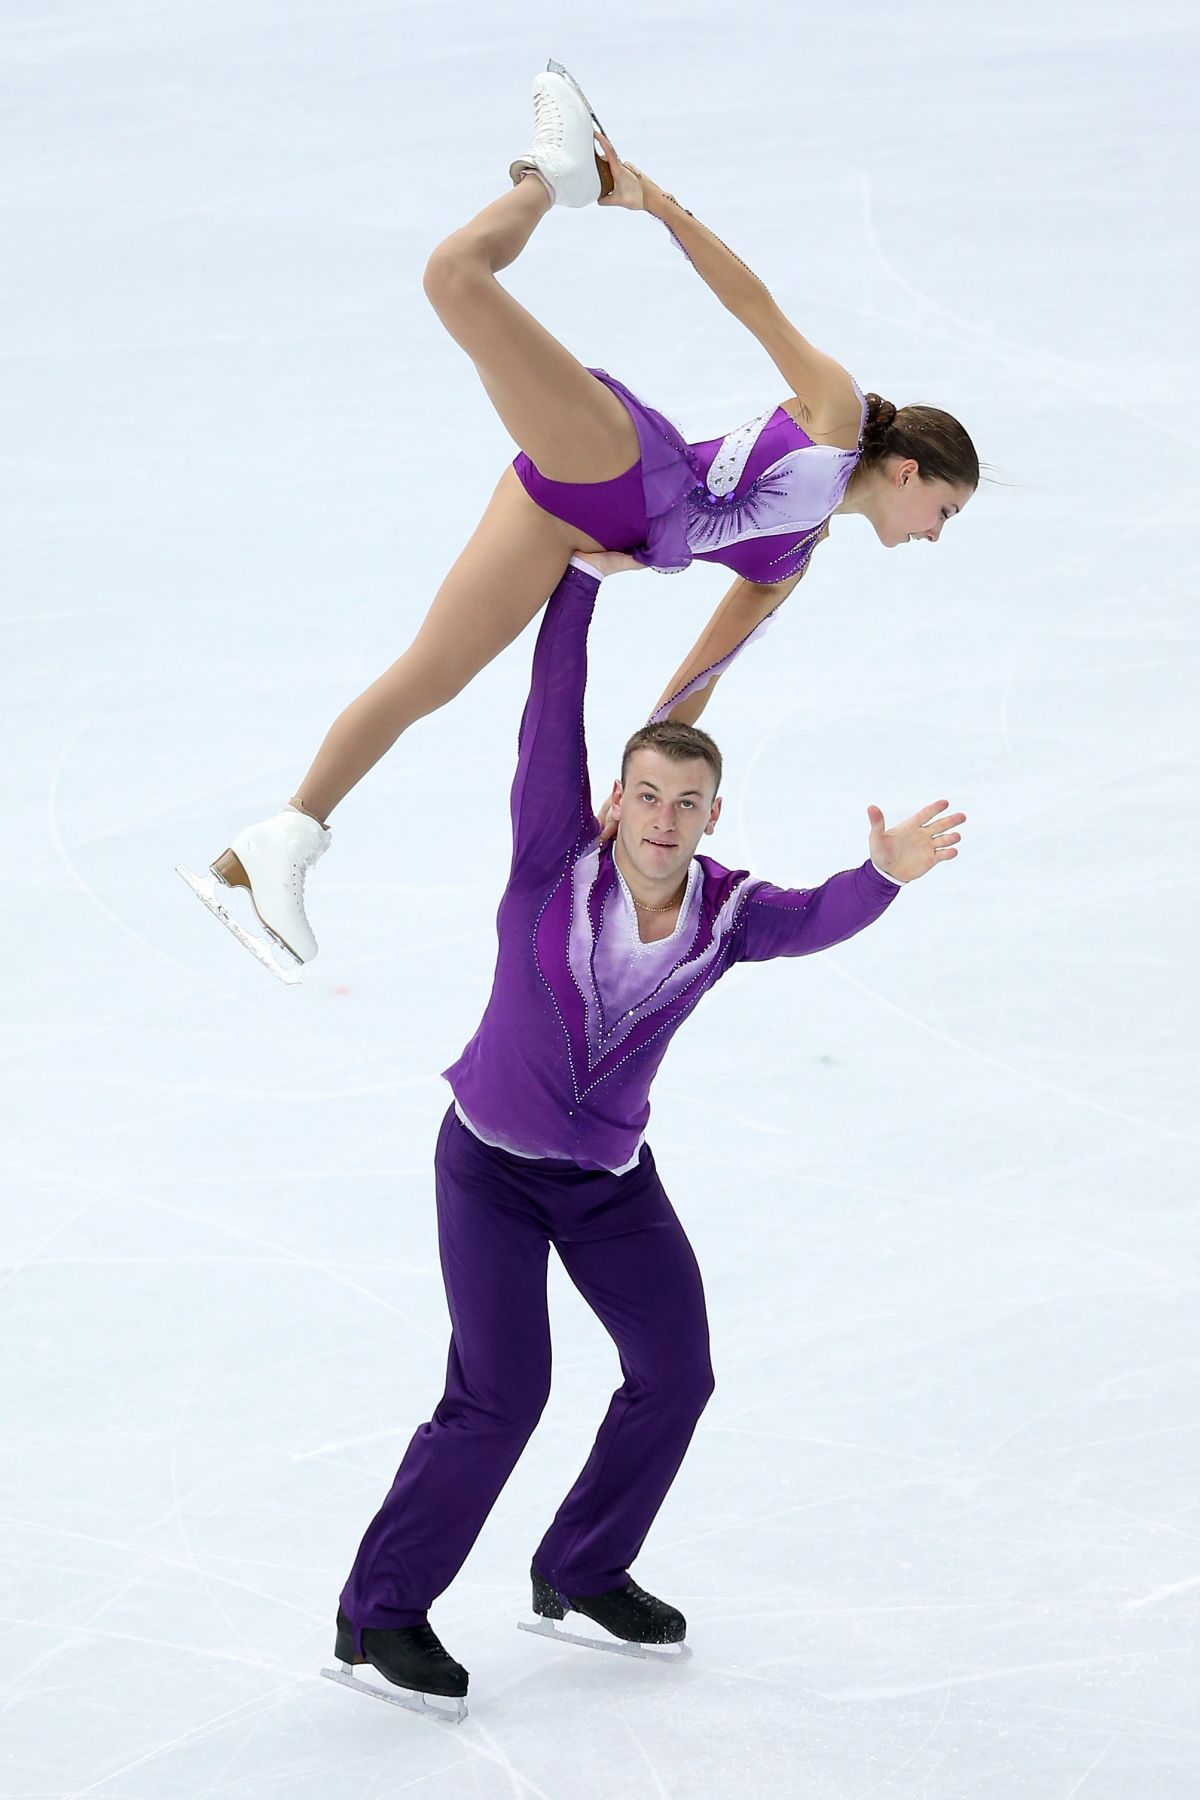 ANDREA DAVIDOVICH and Evgeni Krasnopolski at 2014 Winter Olympics in Sochi